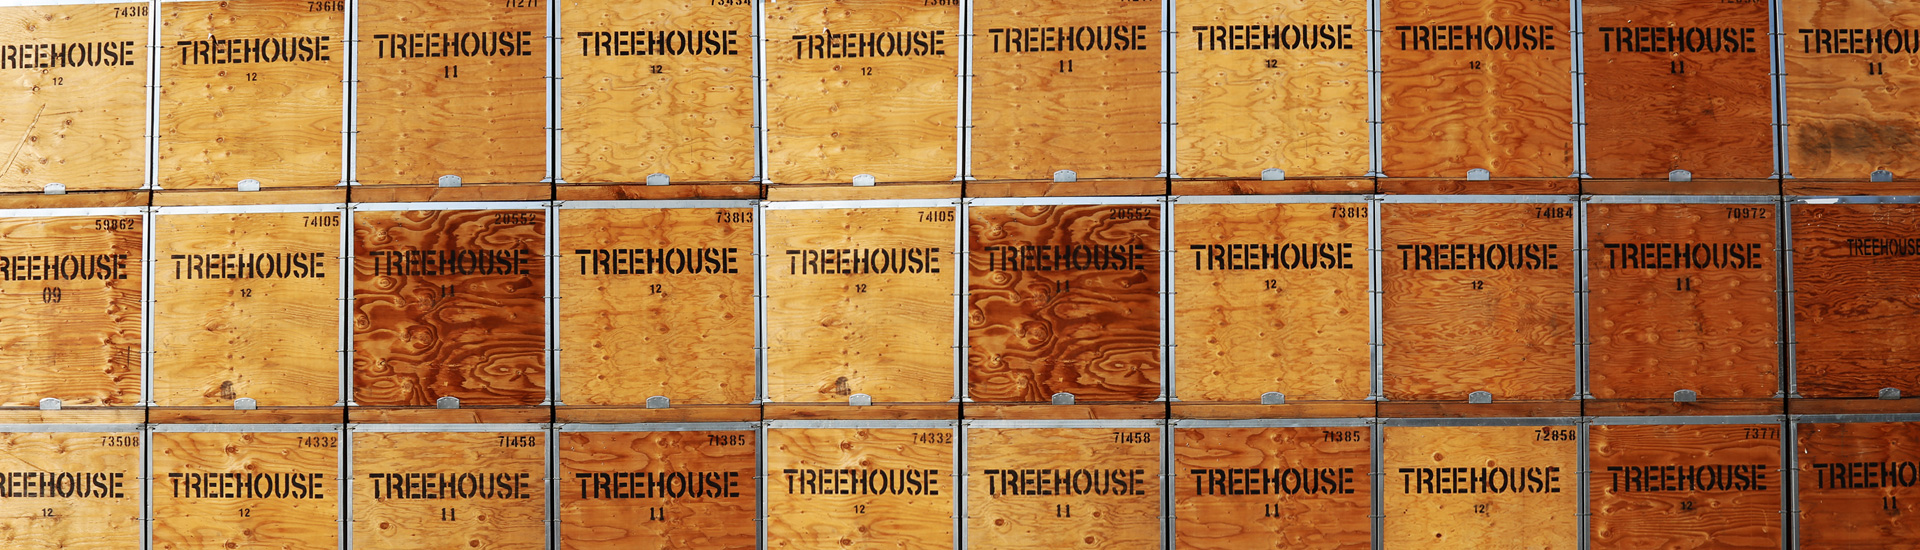 Treehouse Stack